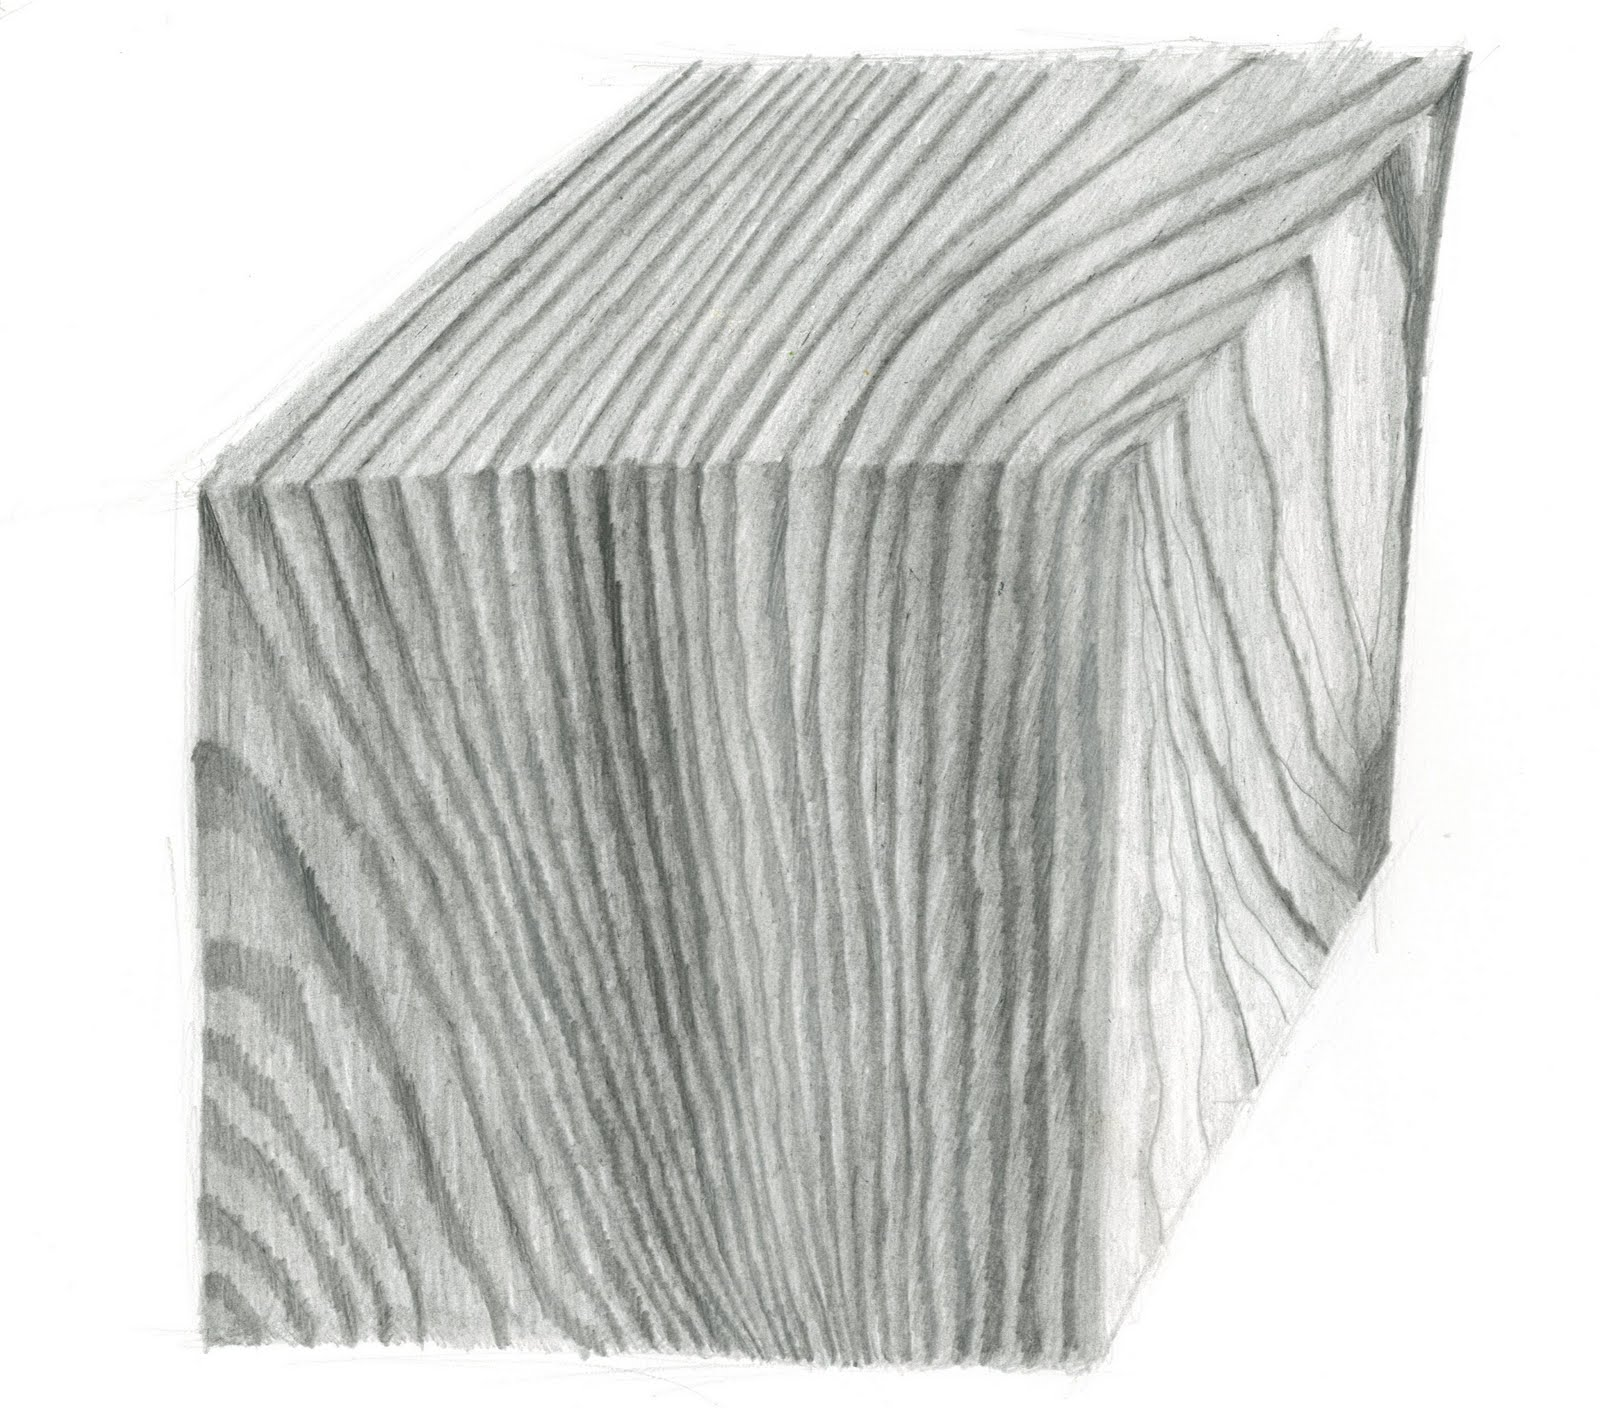 Drawing Textures In Pencil | www.imgkid.com - The Image ...